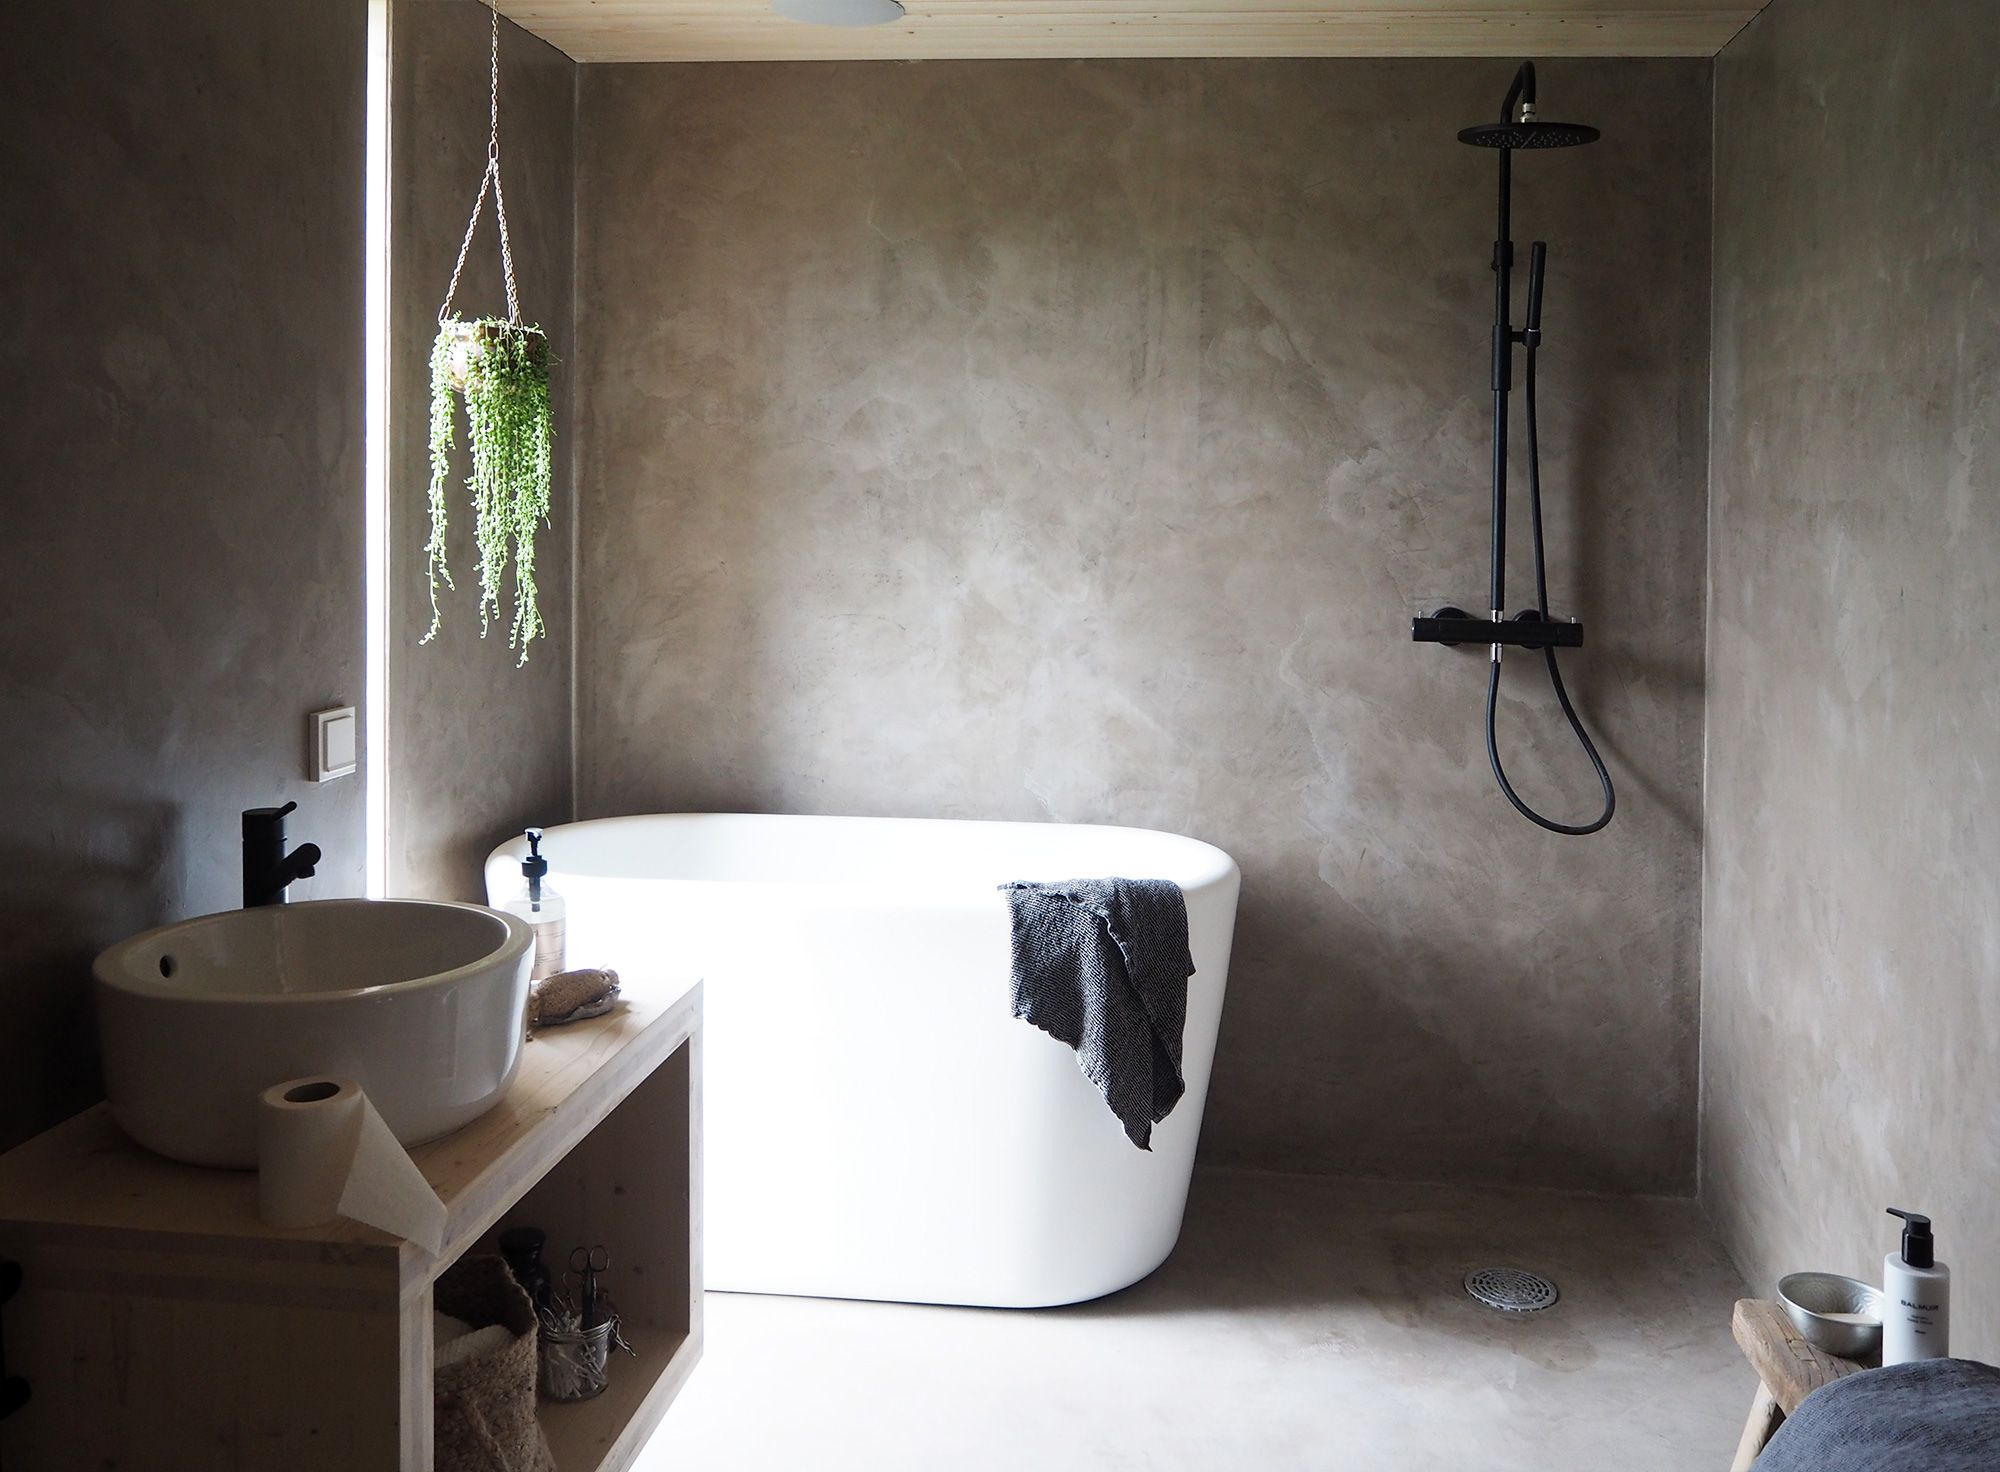 Modern minimalist bathroom with a slightly industrial feel.